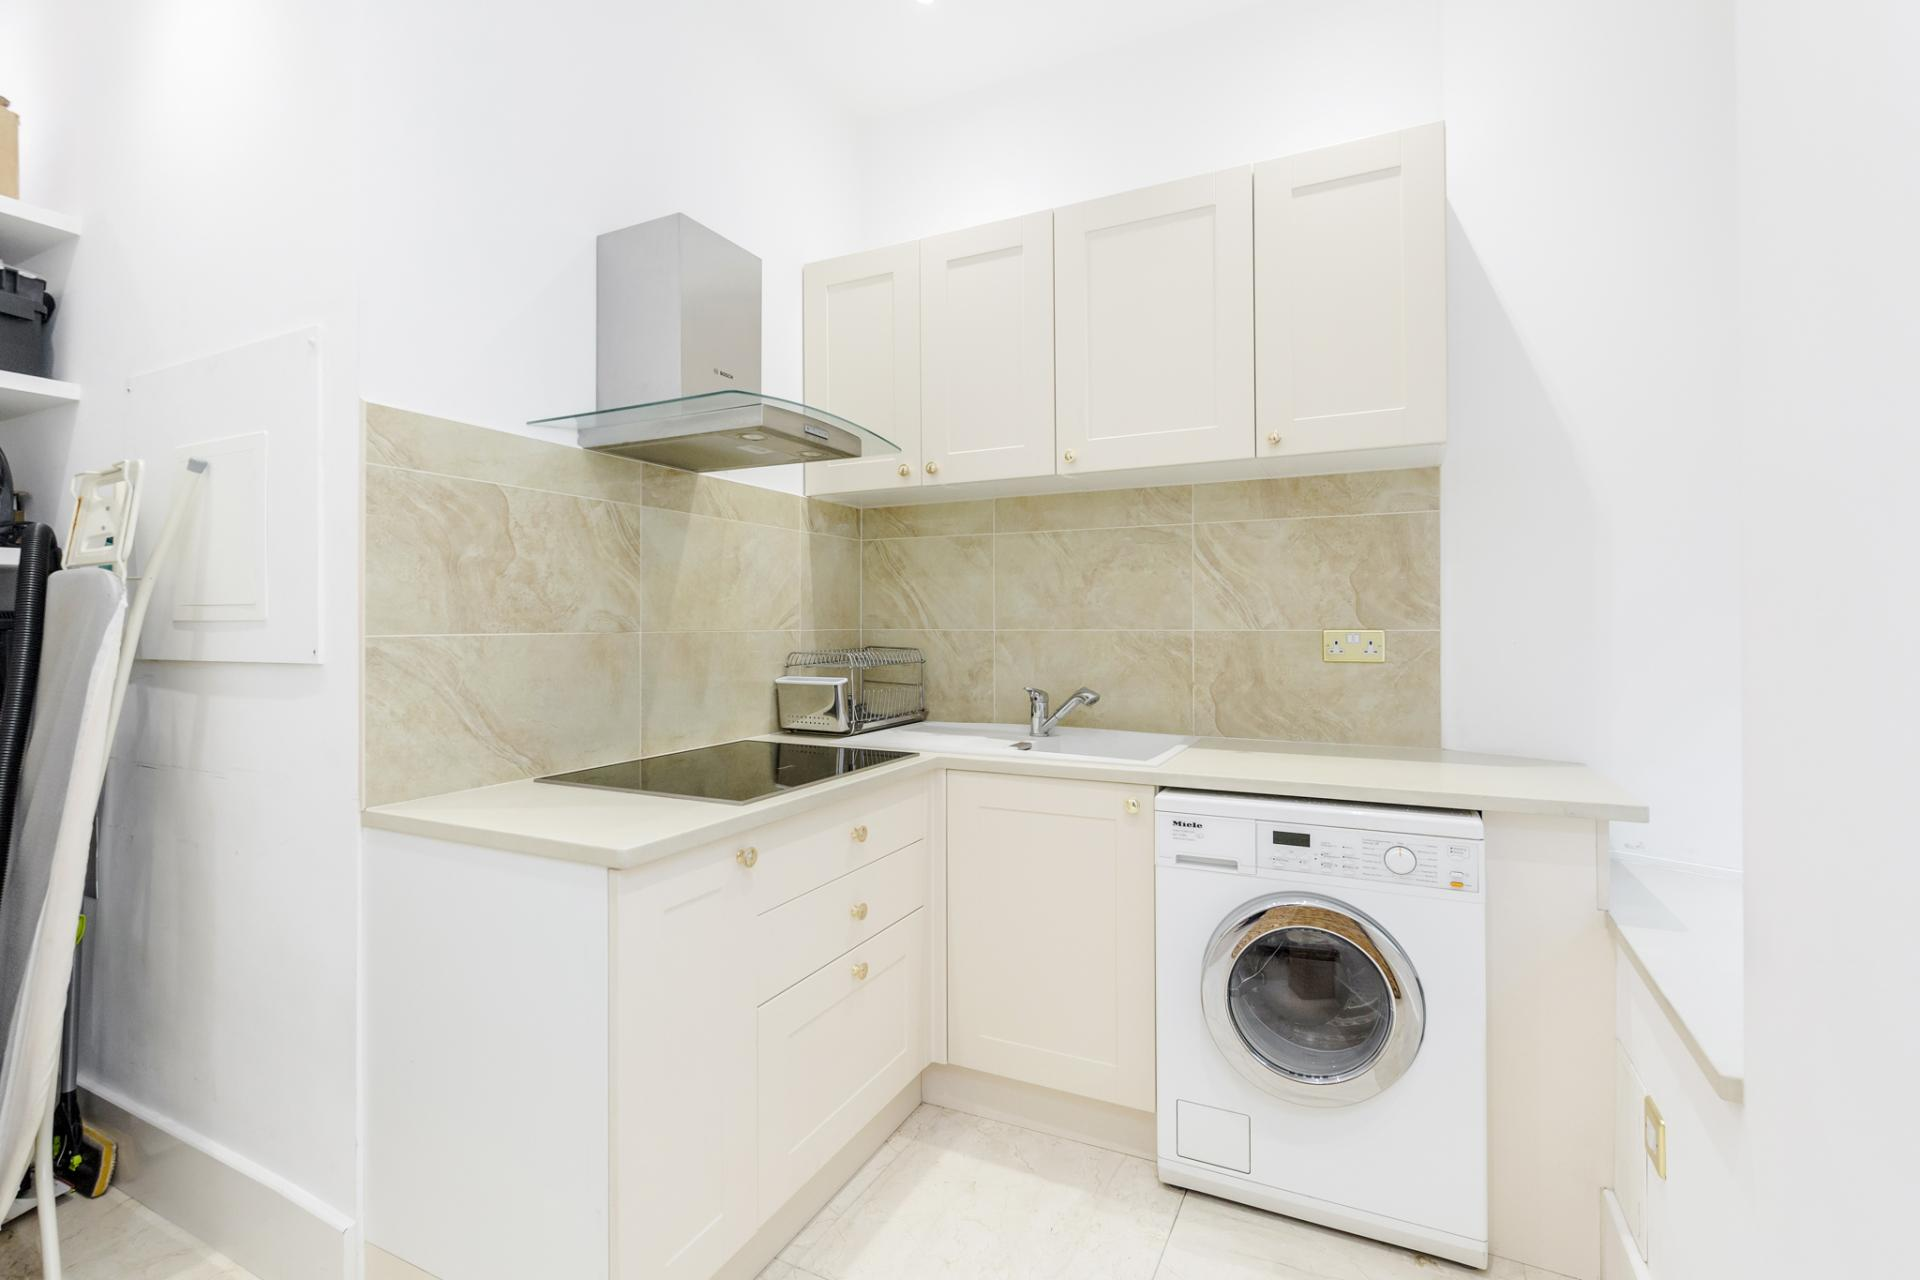 Washer at Grosvenor Square Apartment, Mayfair, London